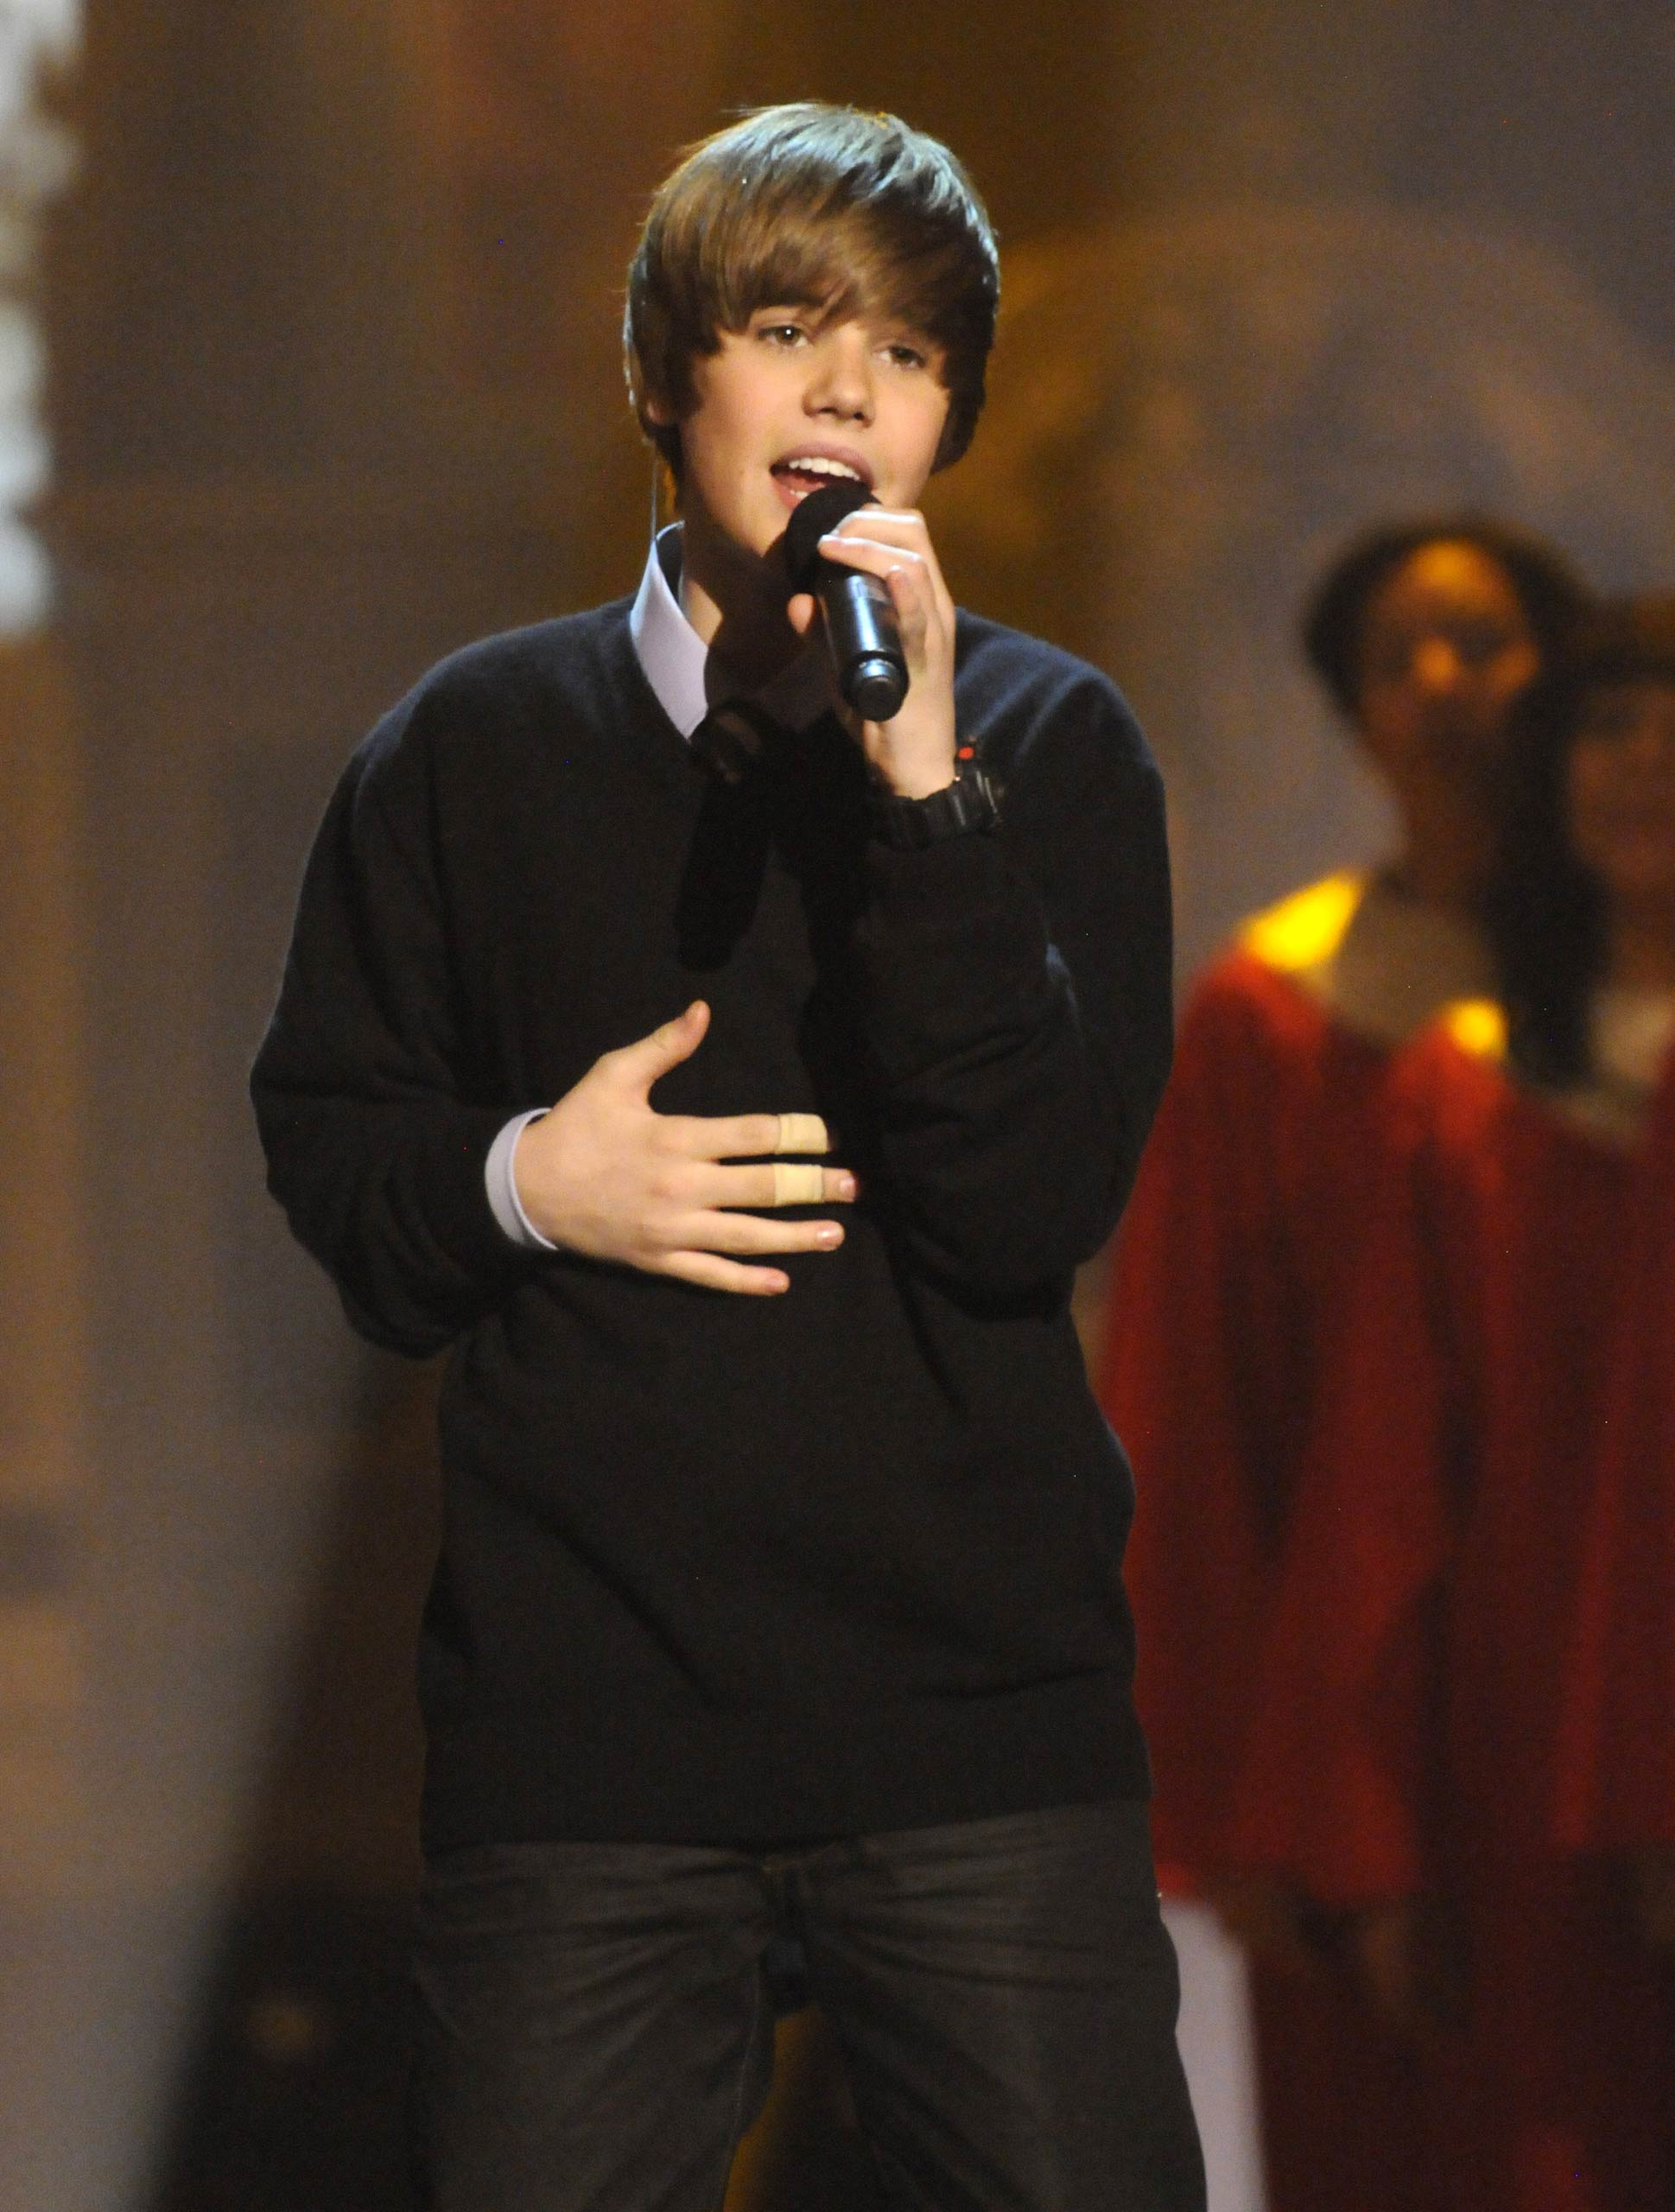 Justin Bieber performs during TNT's <i>Christmas in Washington 2009</i> at the National Building Museum in Washington, DC in 2009.